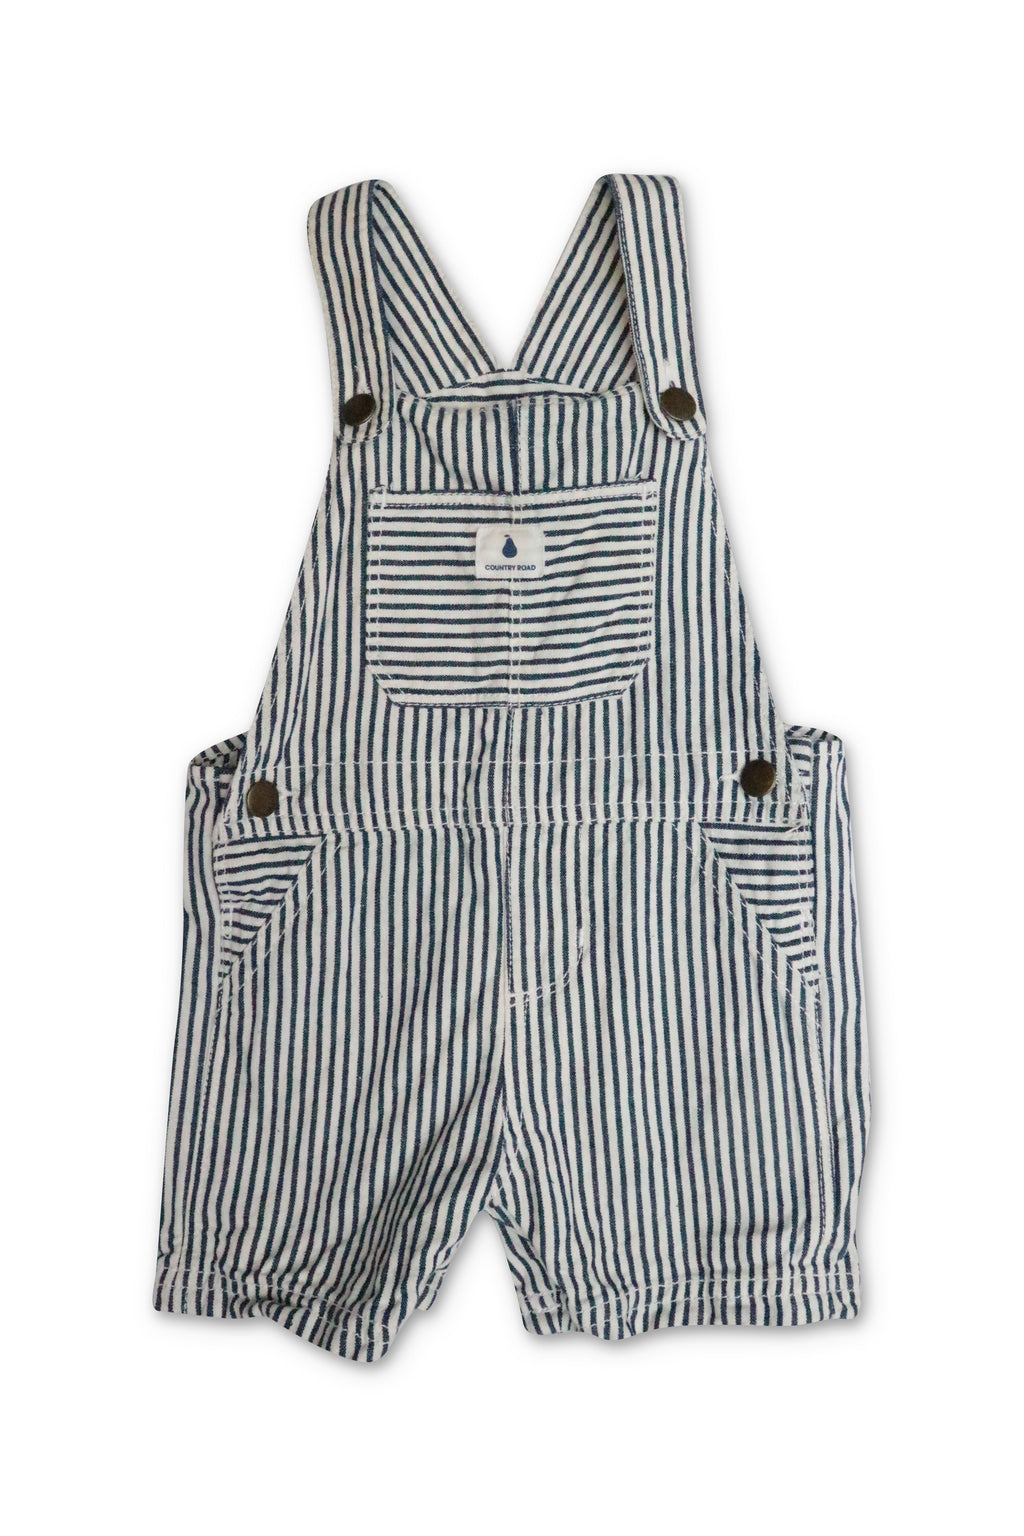 Country Road Shortalls size 1